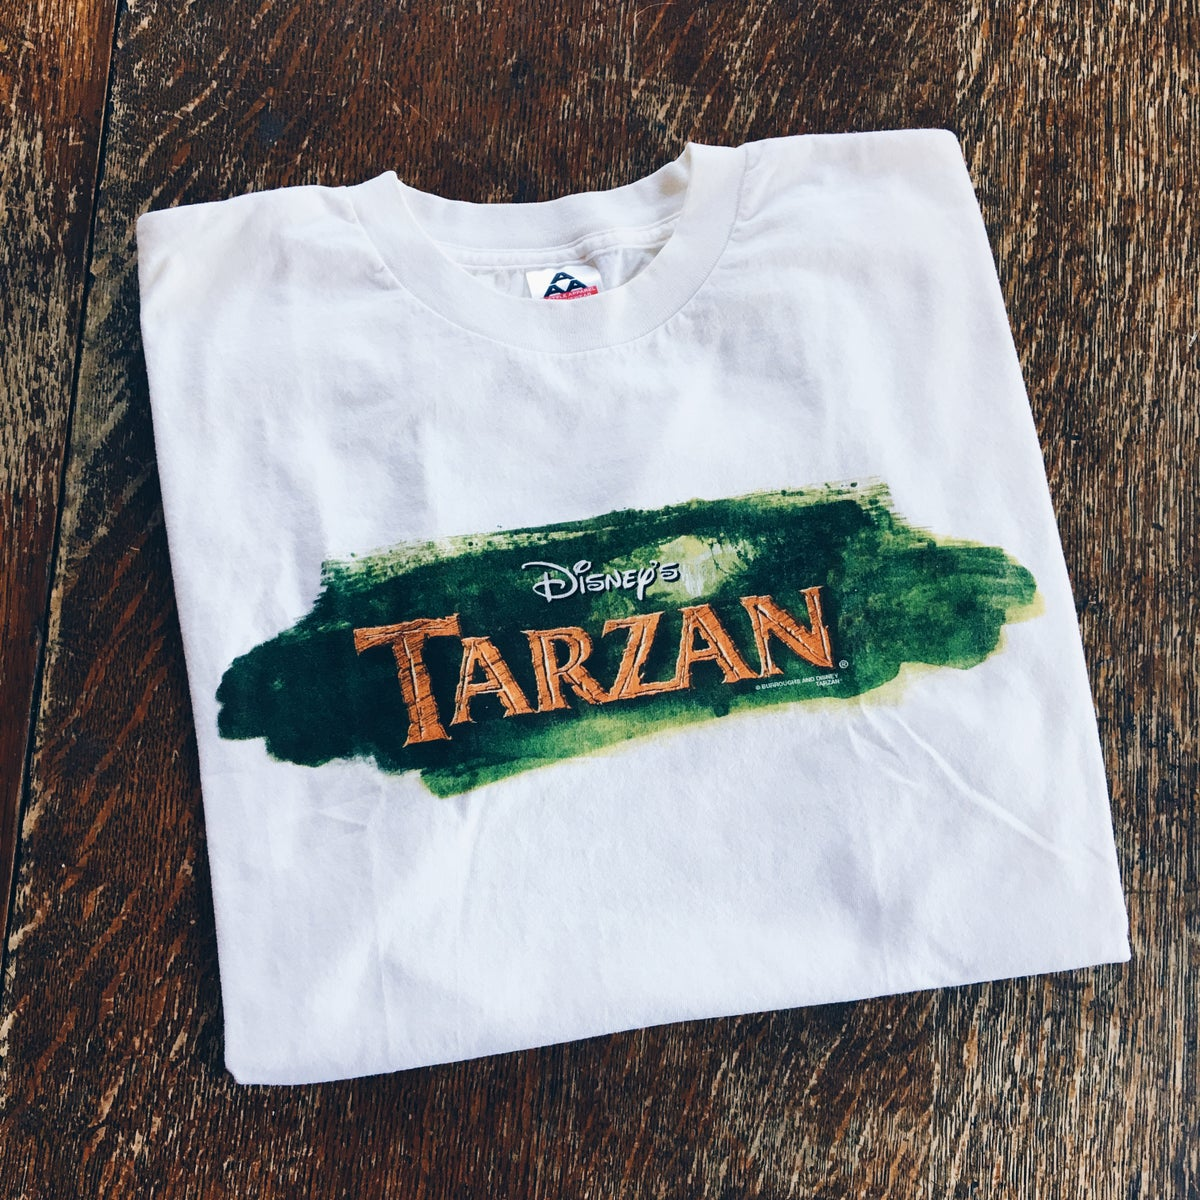 Image of Original 1999 Disney Tarzan Promo Tee.